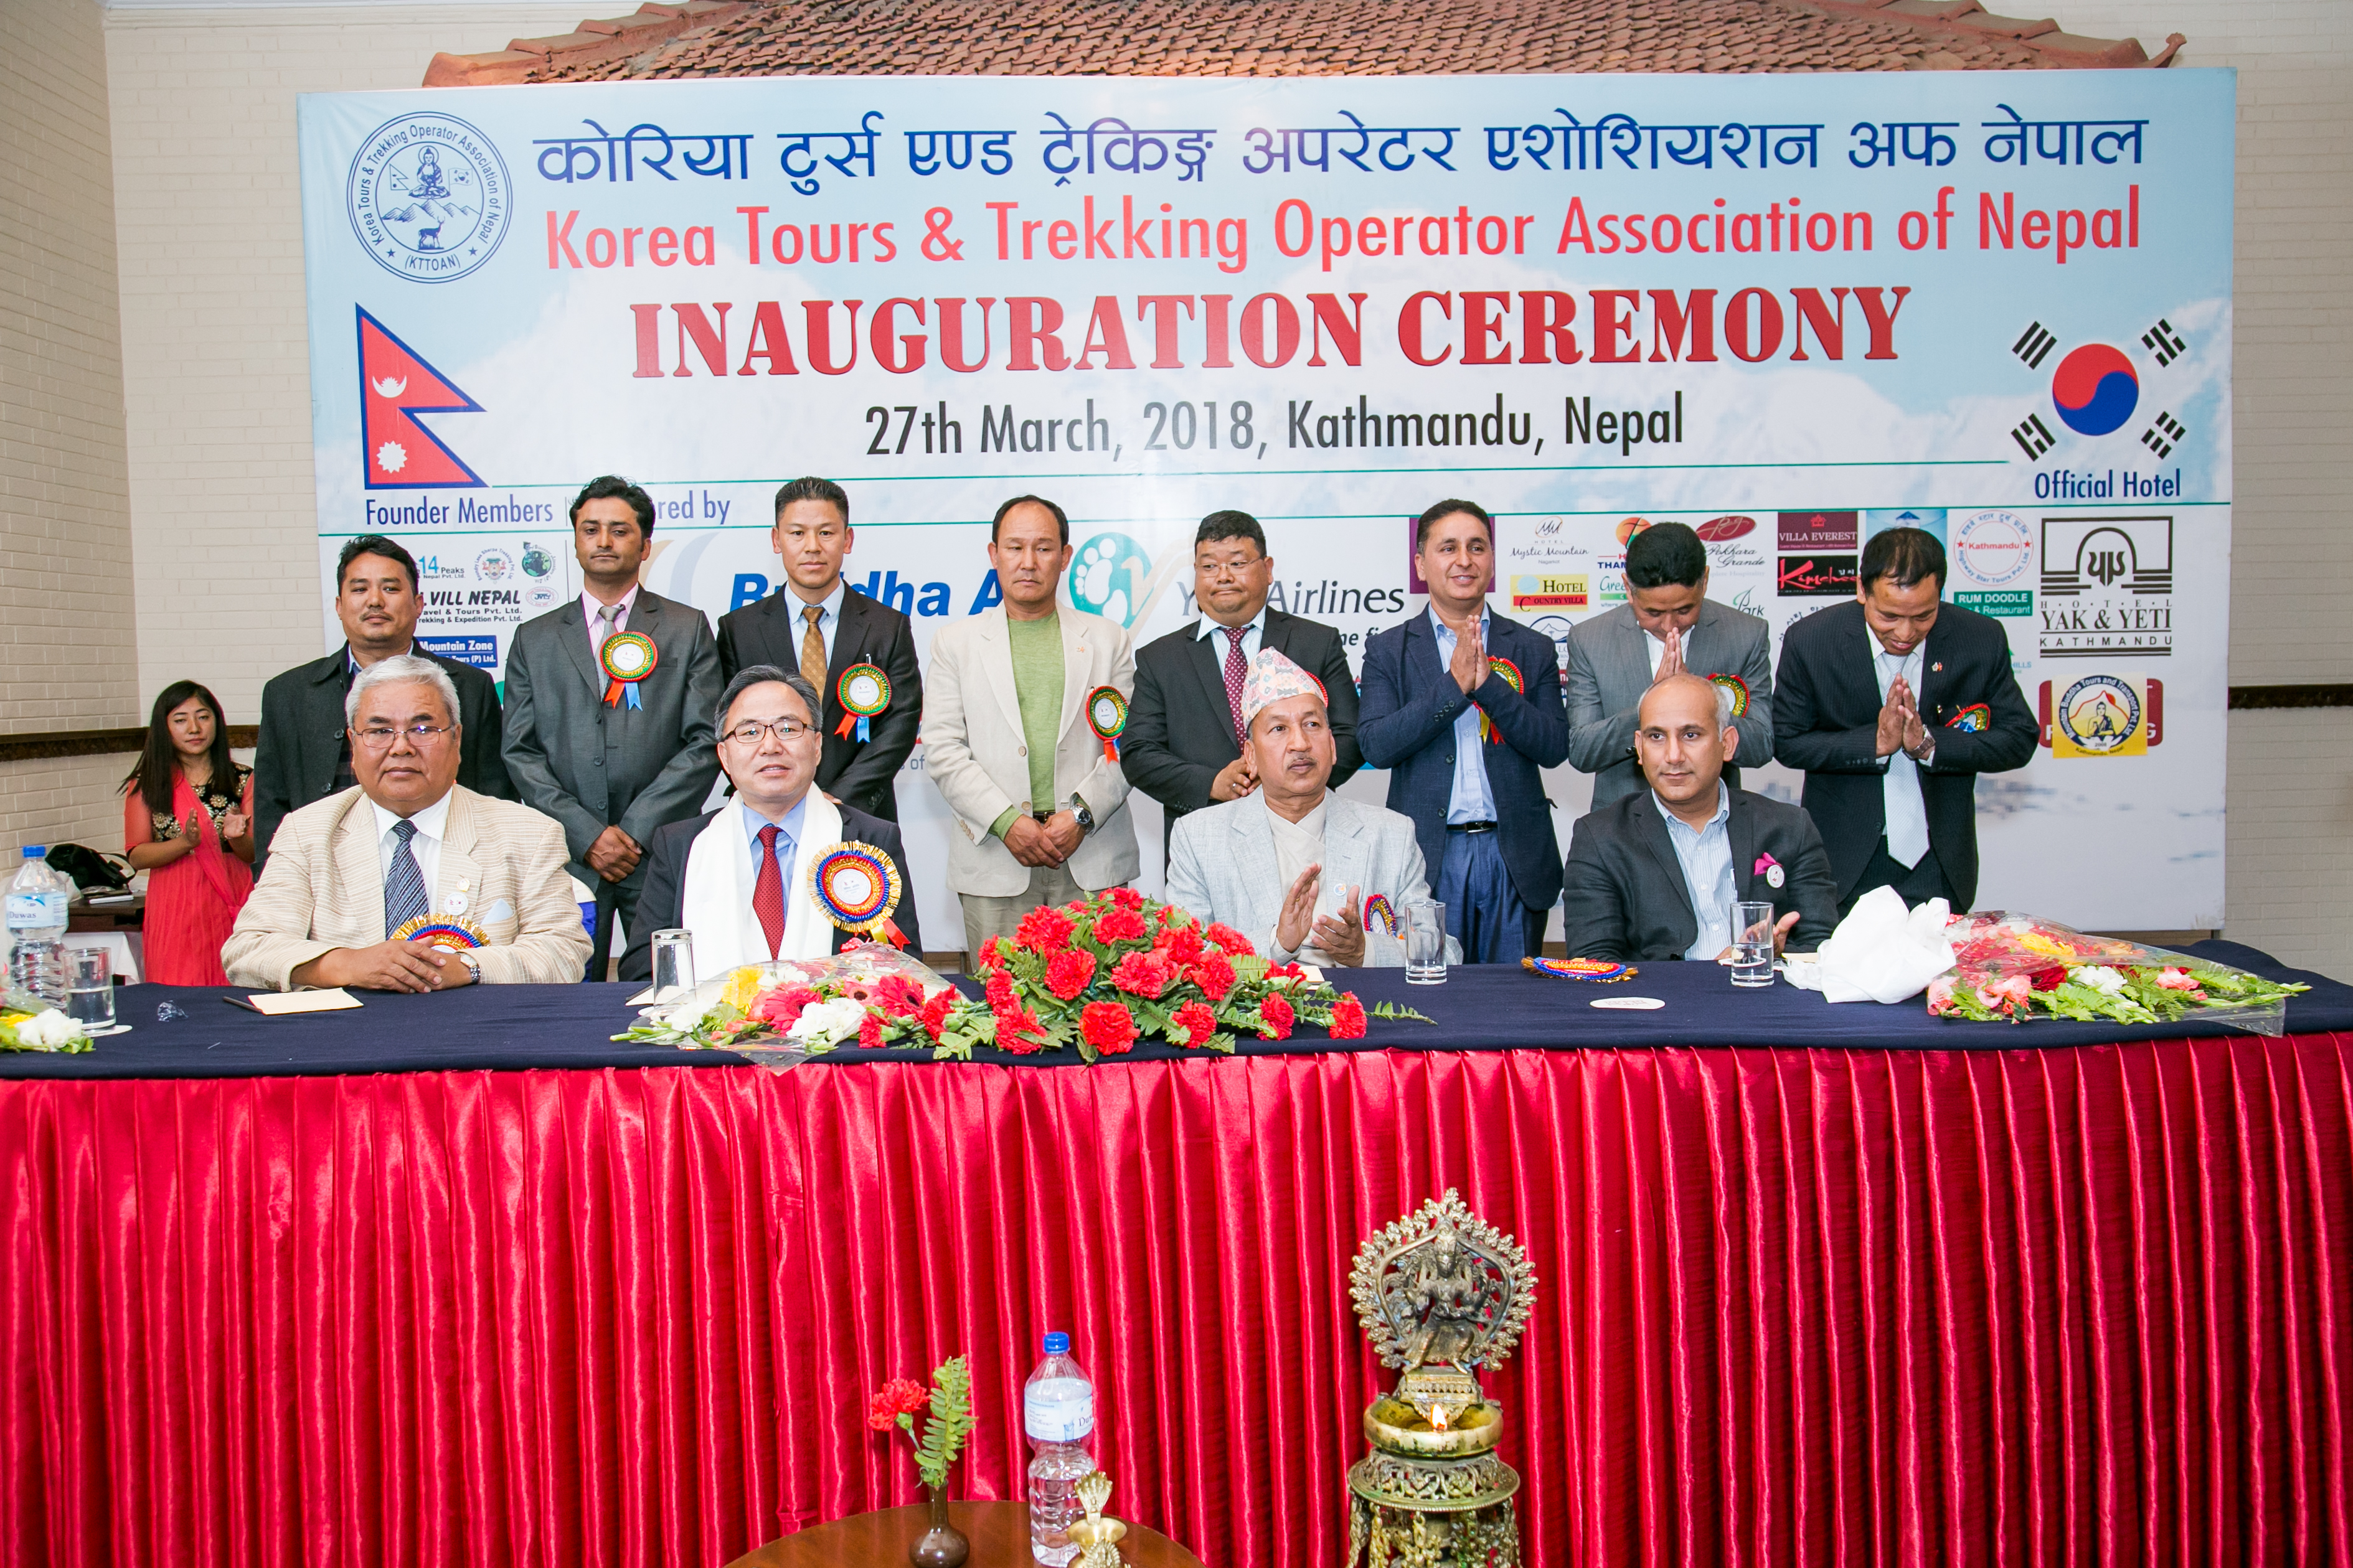 Korea Tours and Trekking Operator Association of Nepal formed to boost tourist arrivals